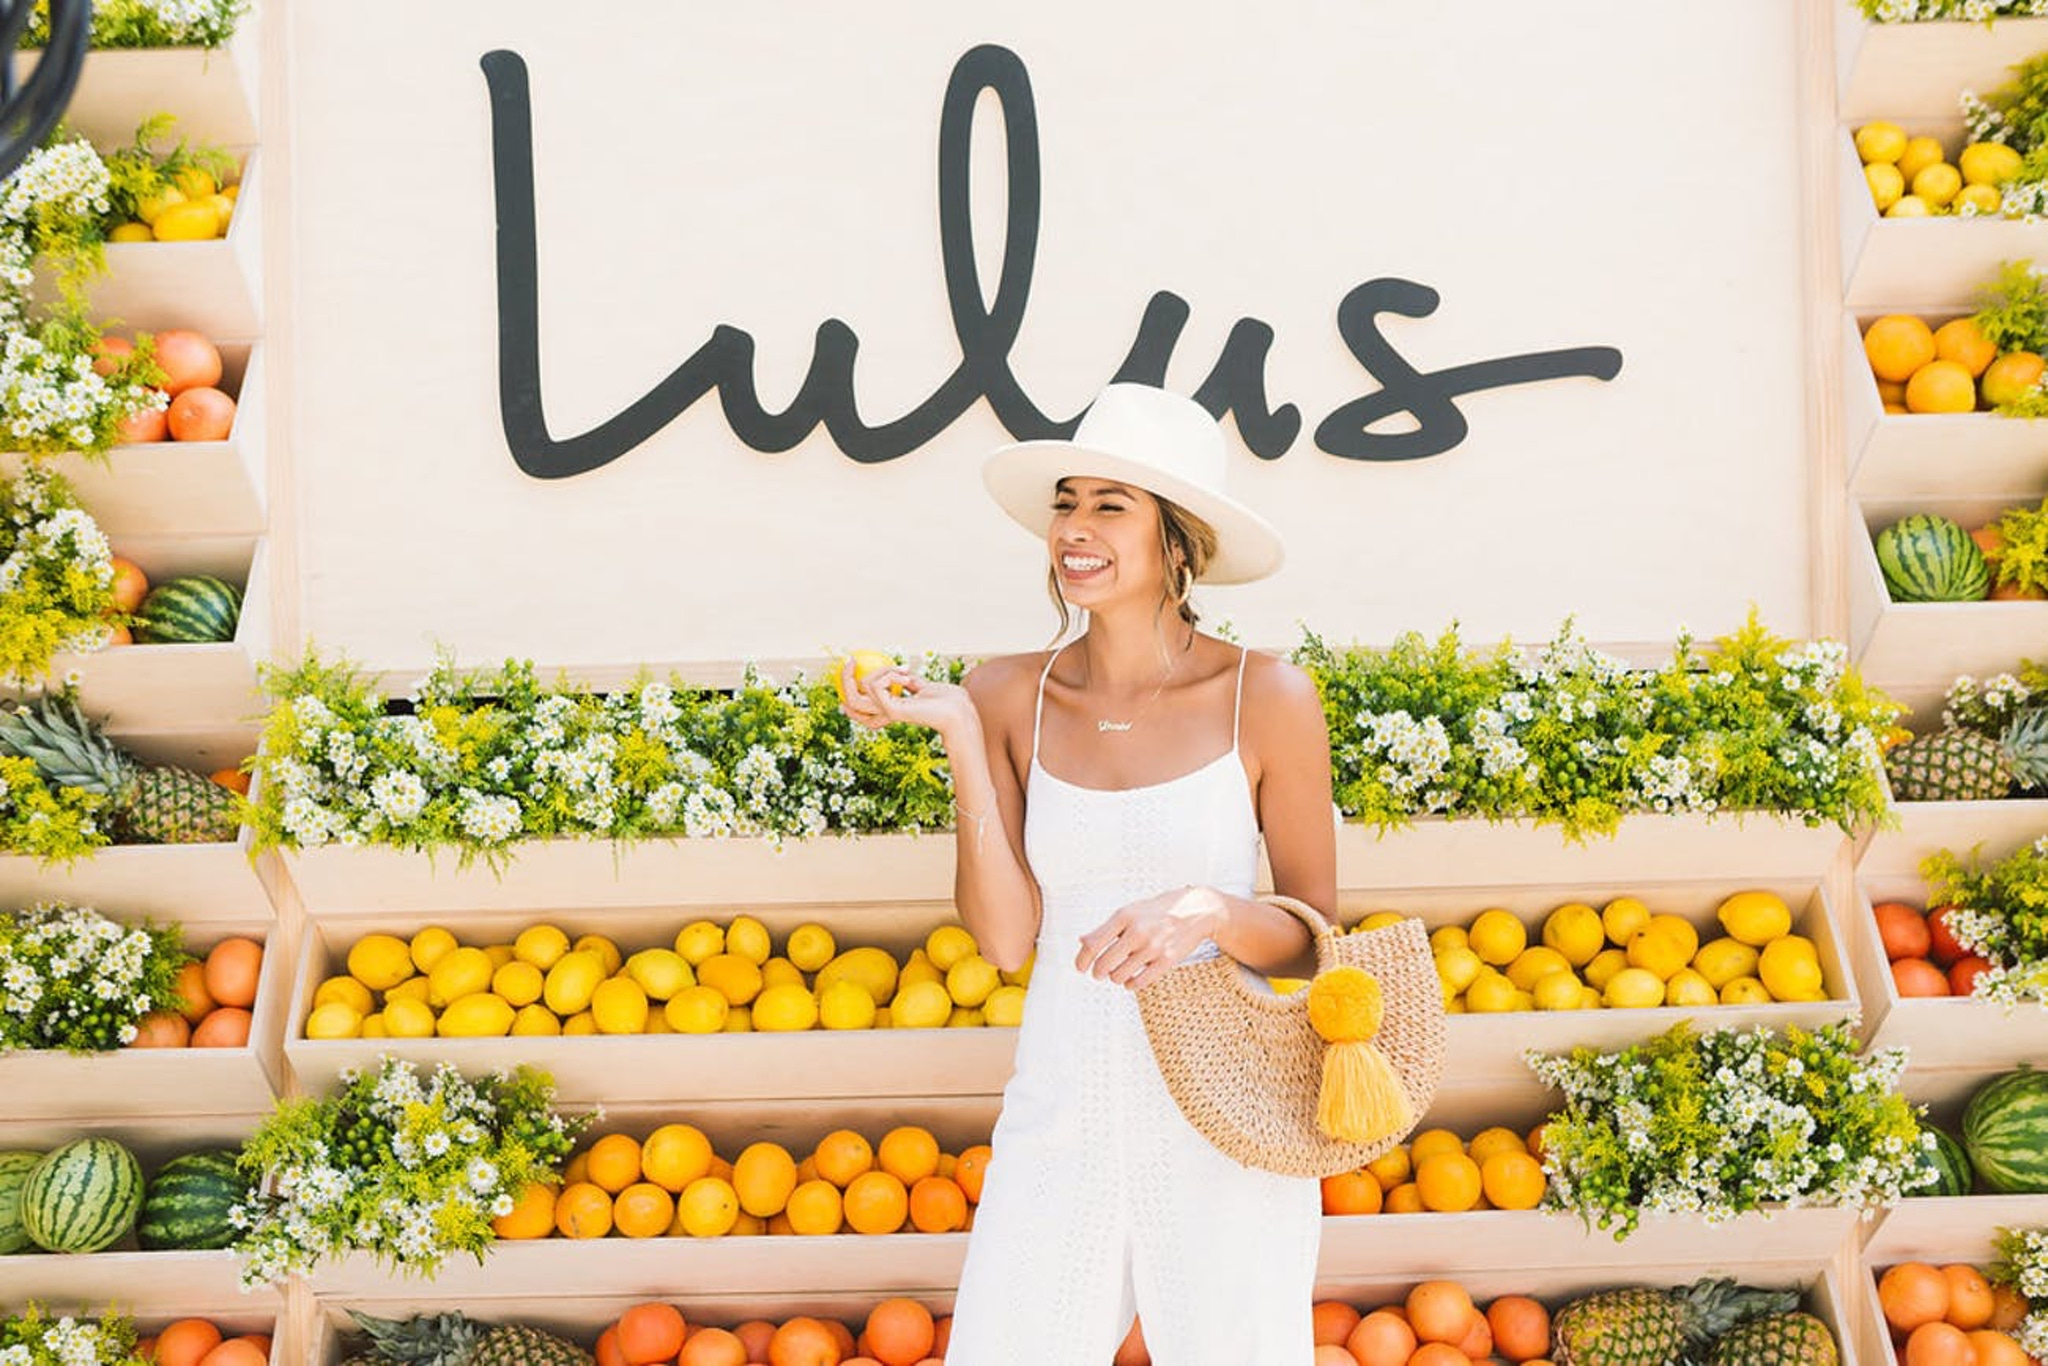 Lulus clothing store summer party with influencer posing in front of branded fruit wall